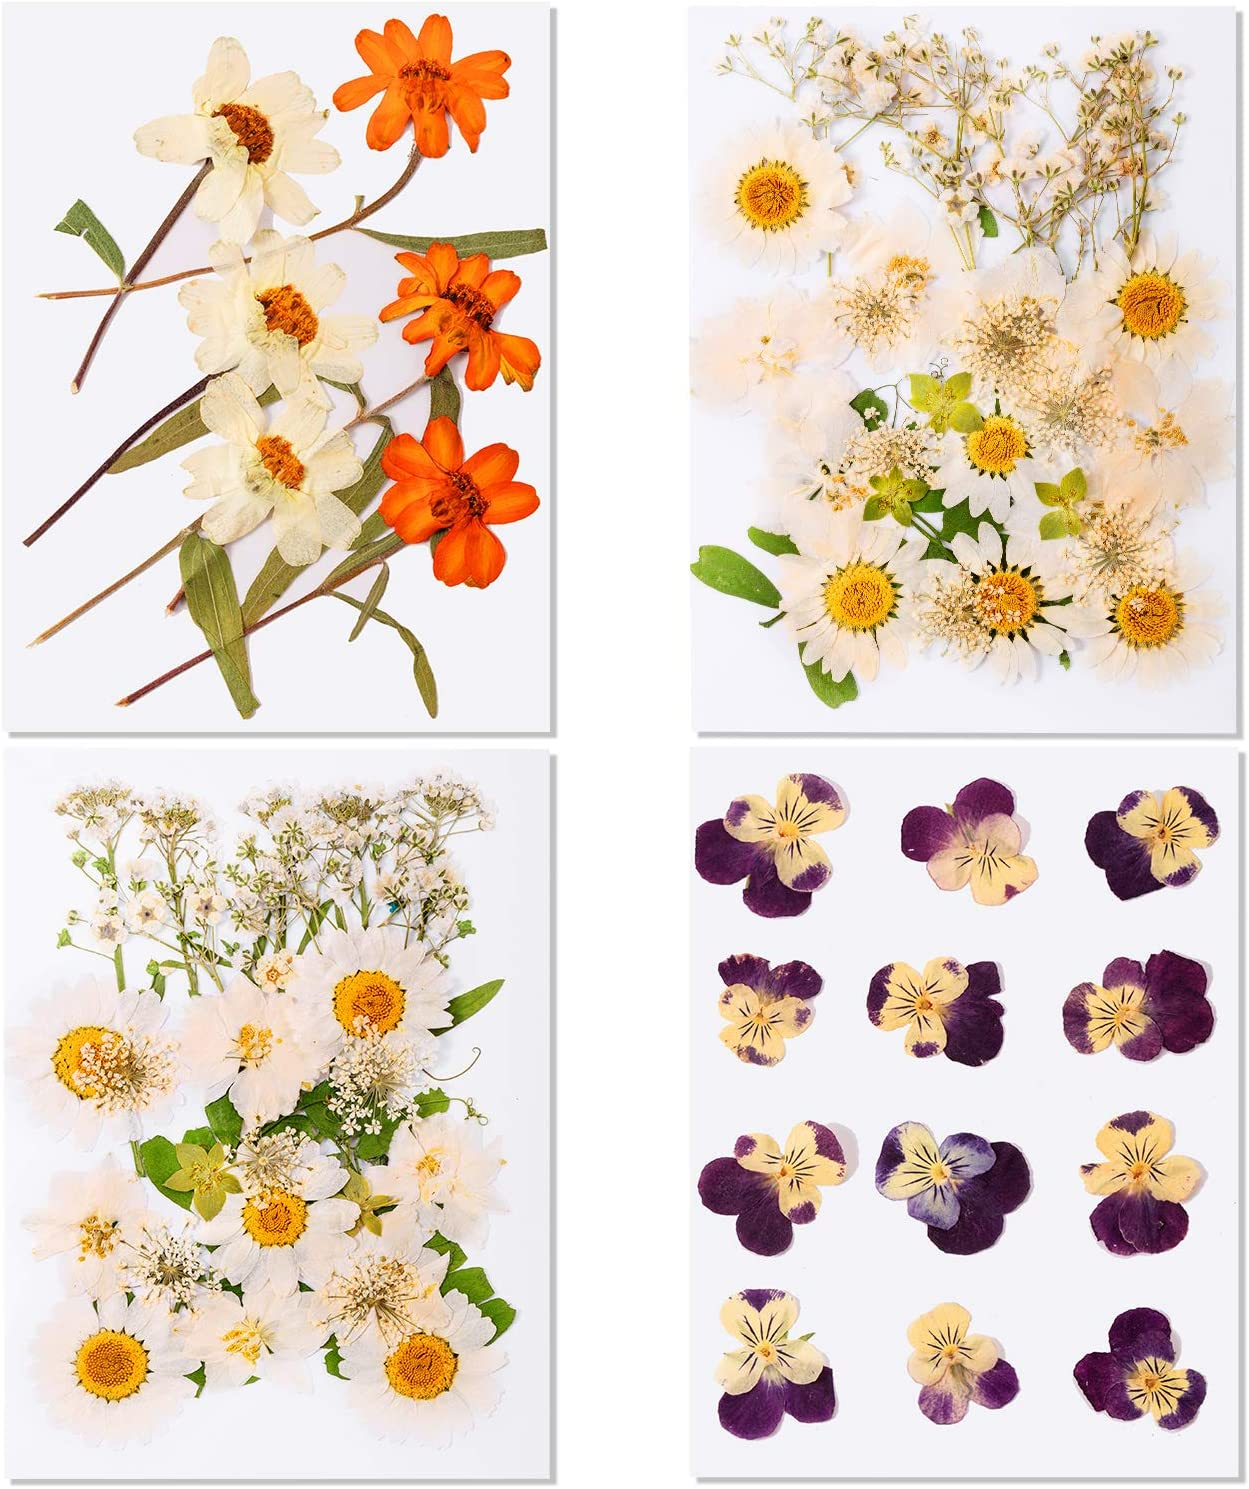 74 Pieces Real Dried Pressed Flowers Leaves Mixed Natural Dry Flowers with Tweezers for Scrapbooking DIY Candle Decoration Resin Jewelry Pendant Crafts Making